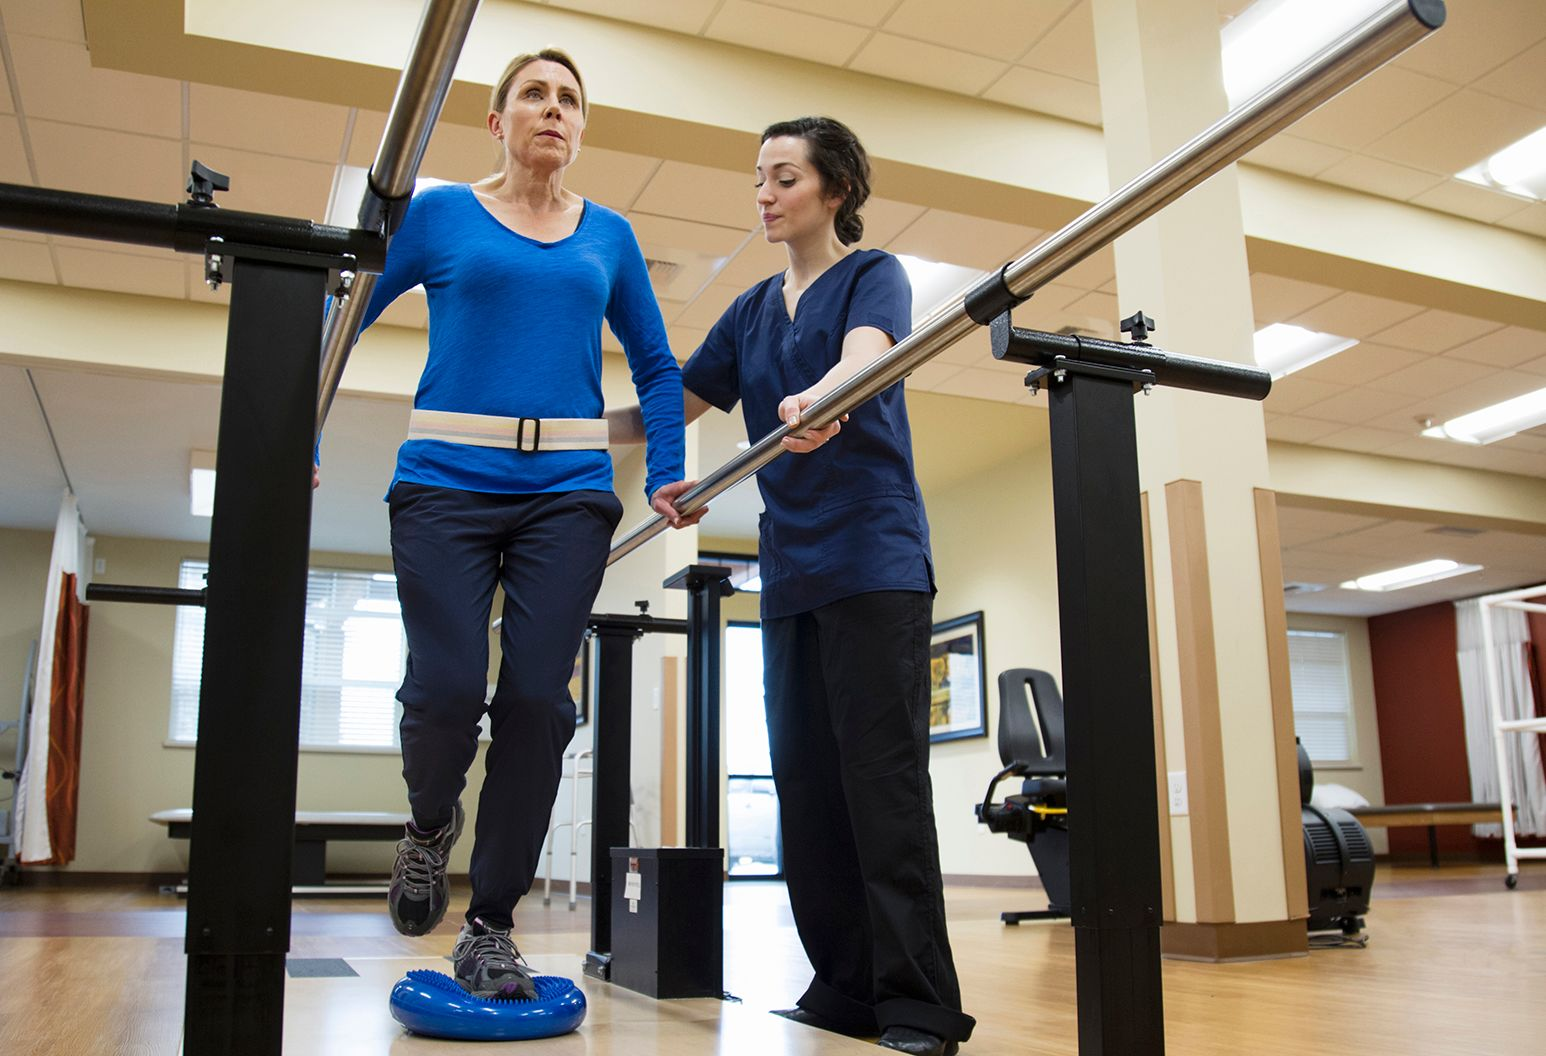 Doctor helping weak patient walk in a physical therapy session.